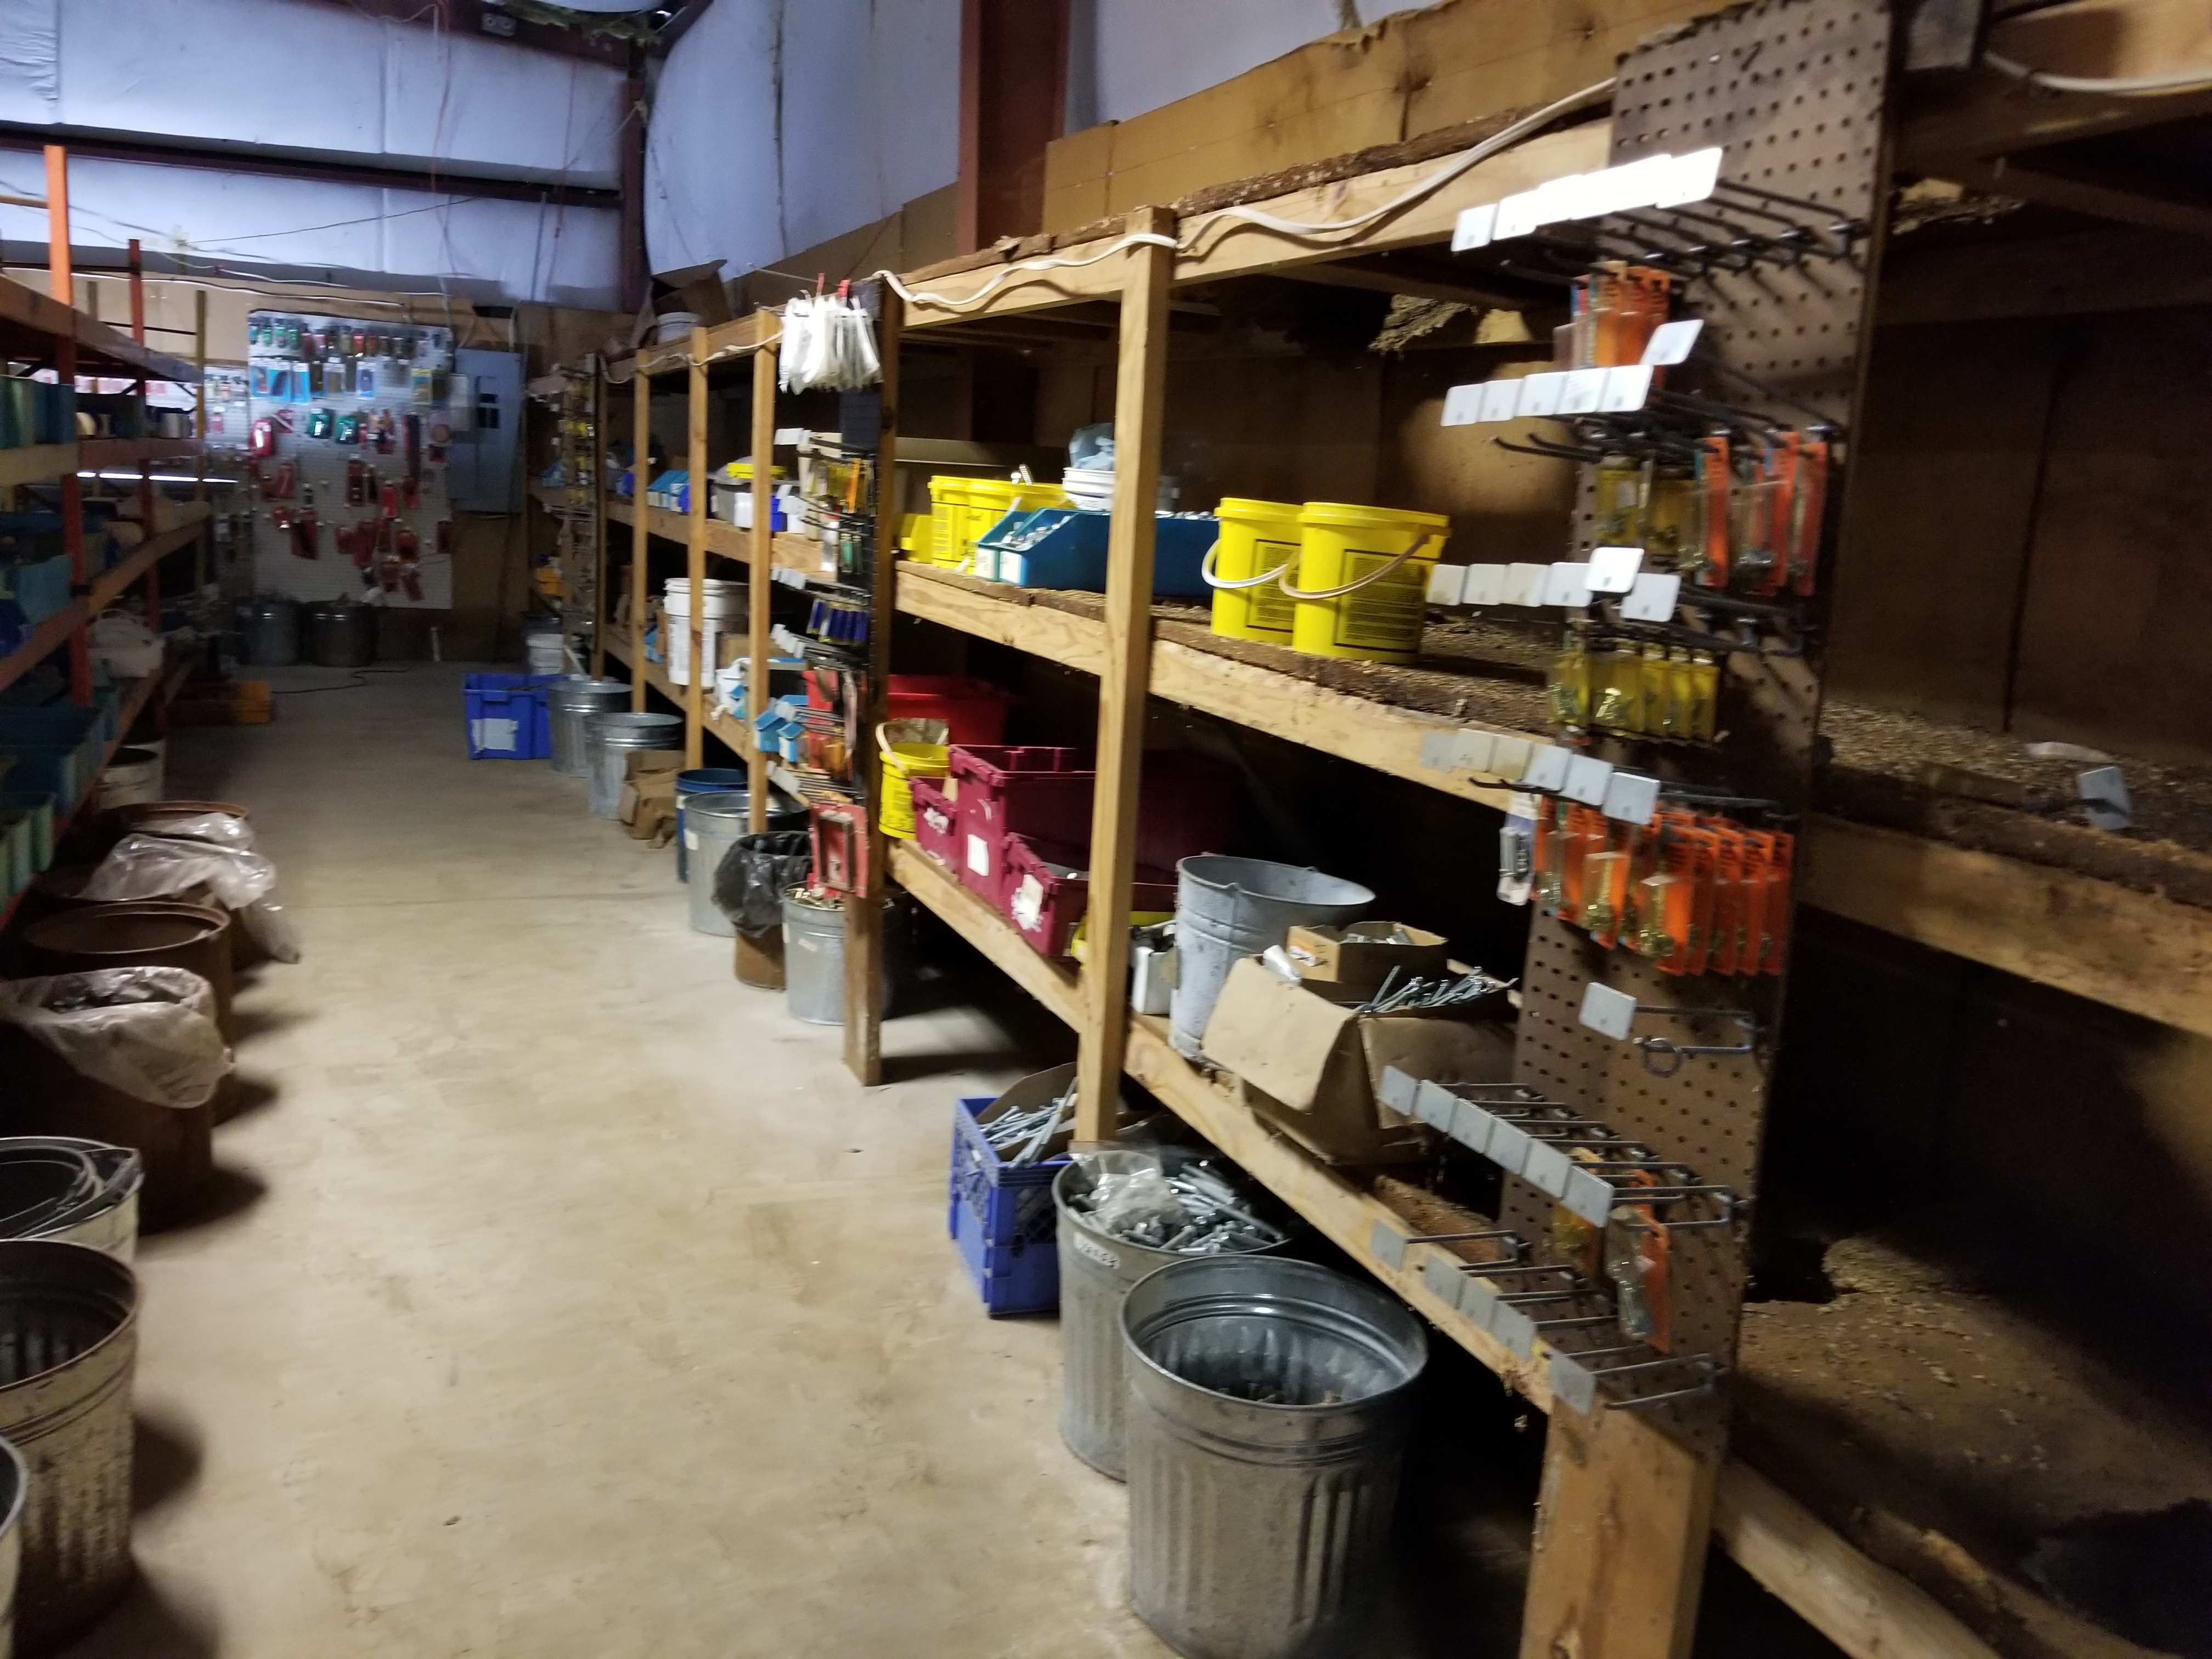 Aisle of Inventory (7)